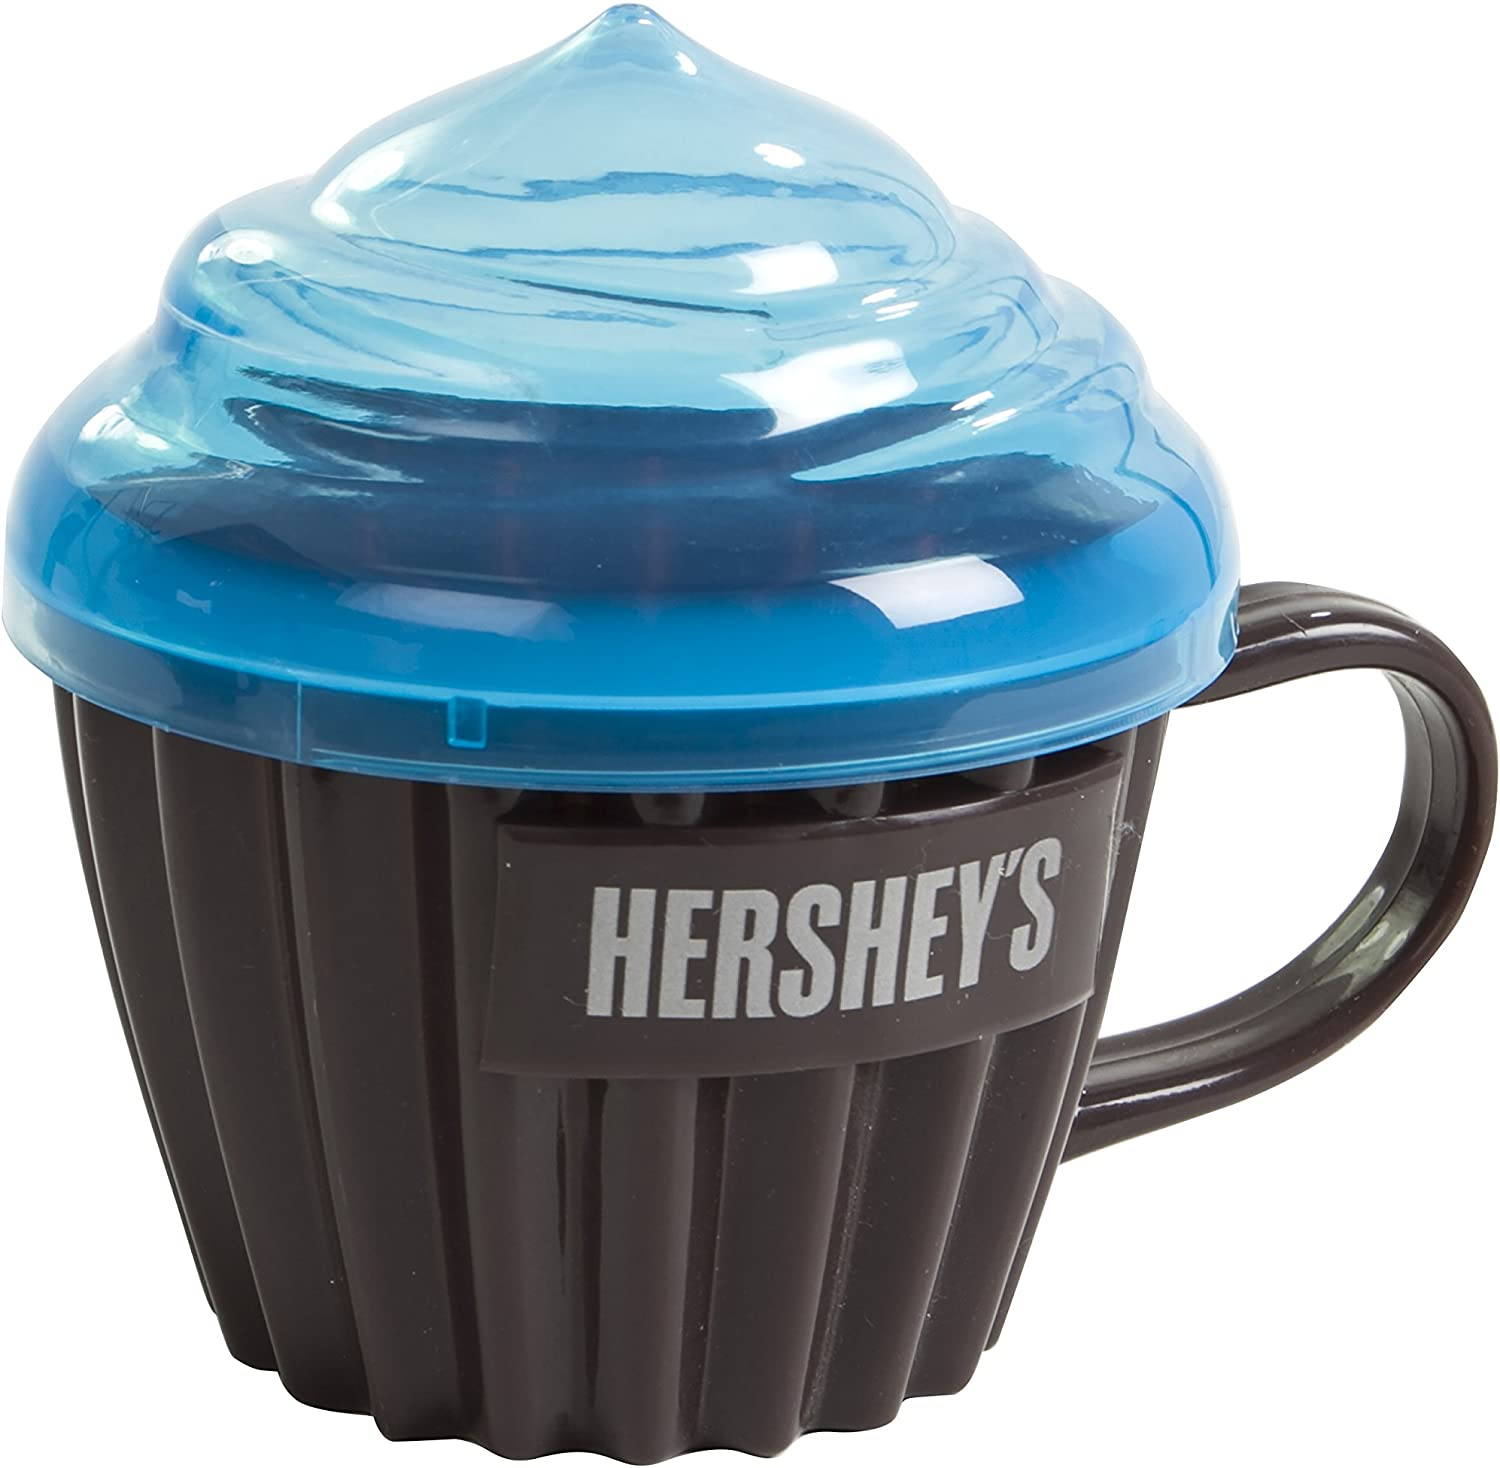 Hershey S Lava Cake Maker Cupcake Maker Instantly Create Microwaved Mini Cakes Recipe Included Amazon Co Uk Kitchen Home